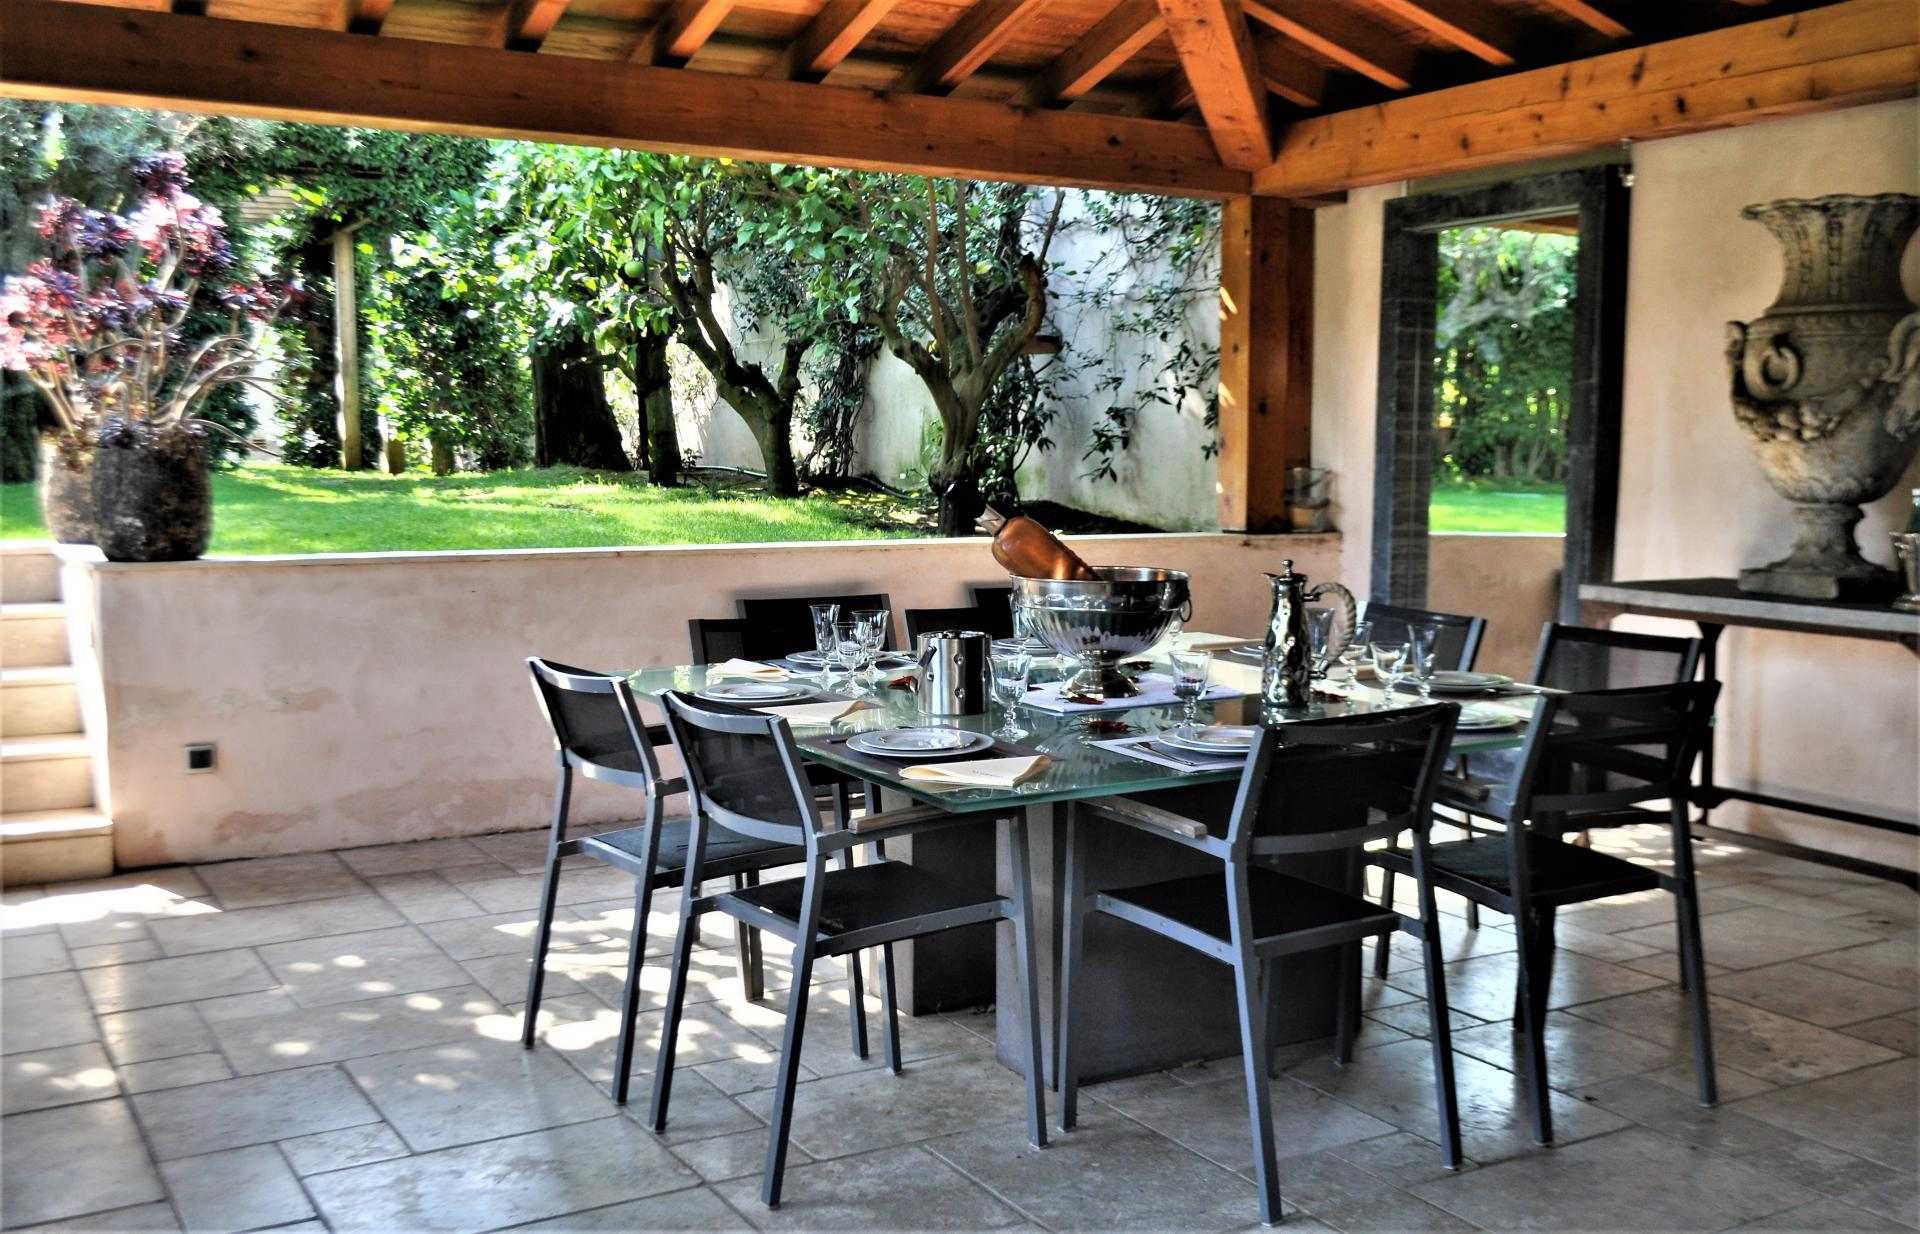 A LOVELY COVERED TERRACE WITH ITS DINING TABLE IN A LUXURY VILLA